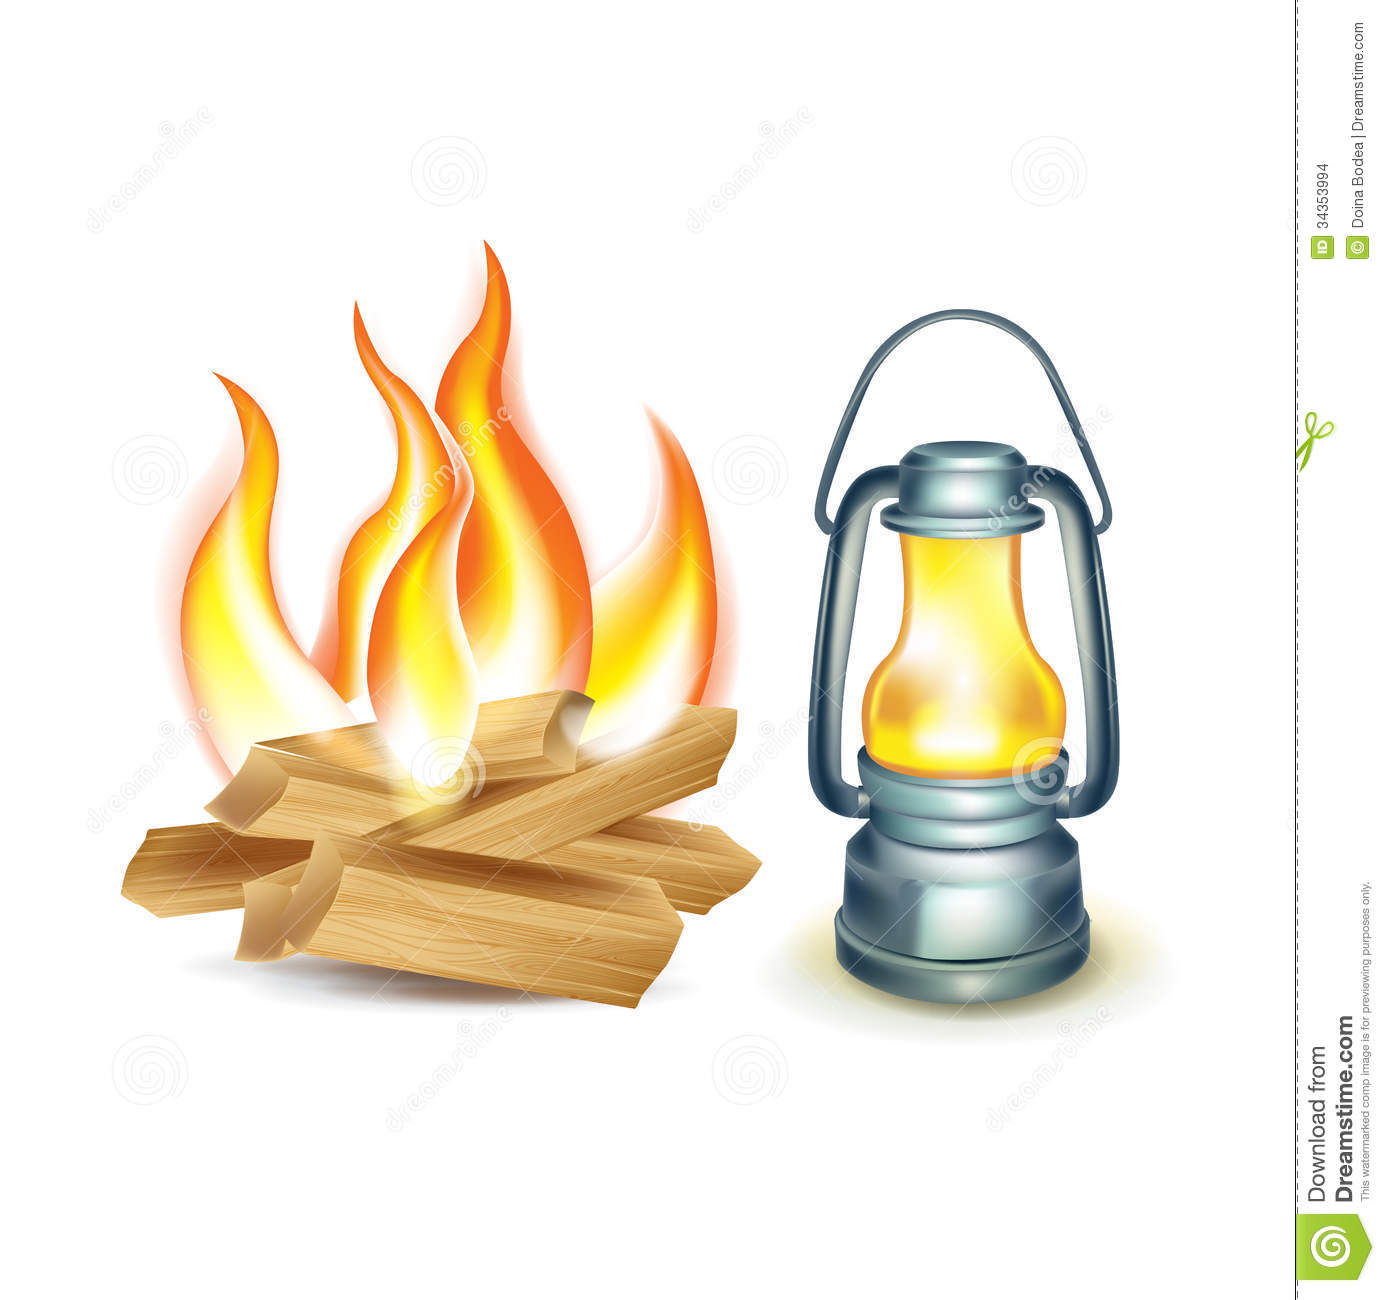 Wood Camp Fire And Oil Lamp Isolated Stock Vector - Illustration ... for Oil Lamp Clip Art  146hul